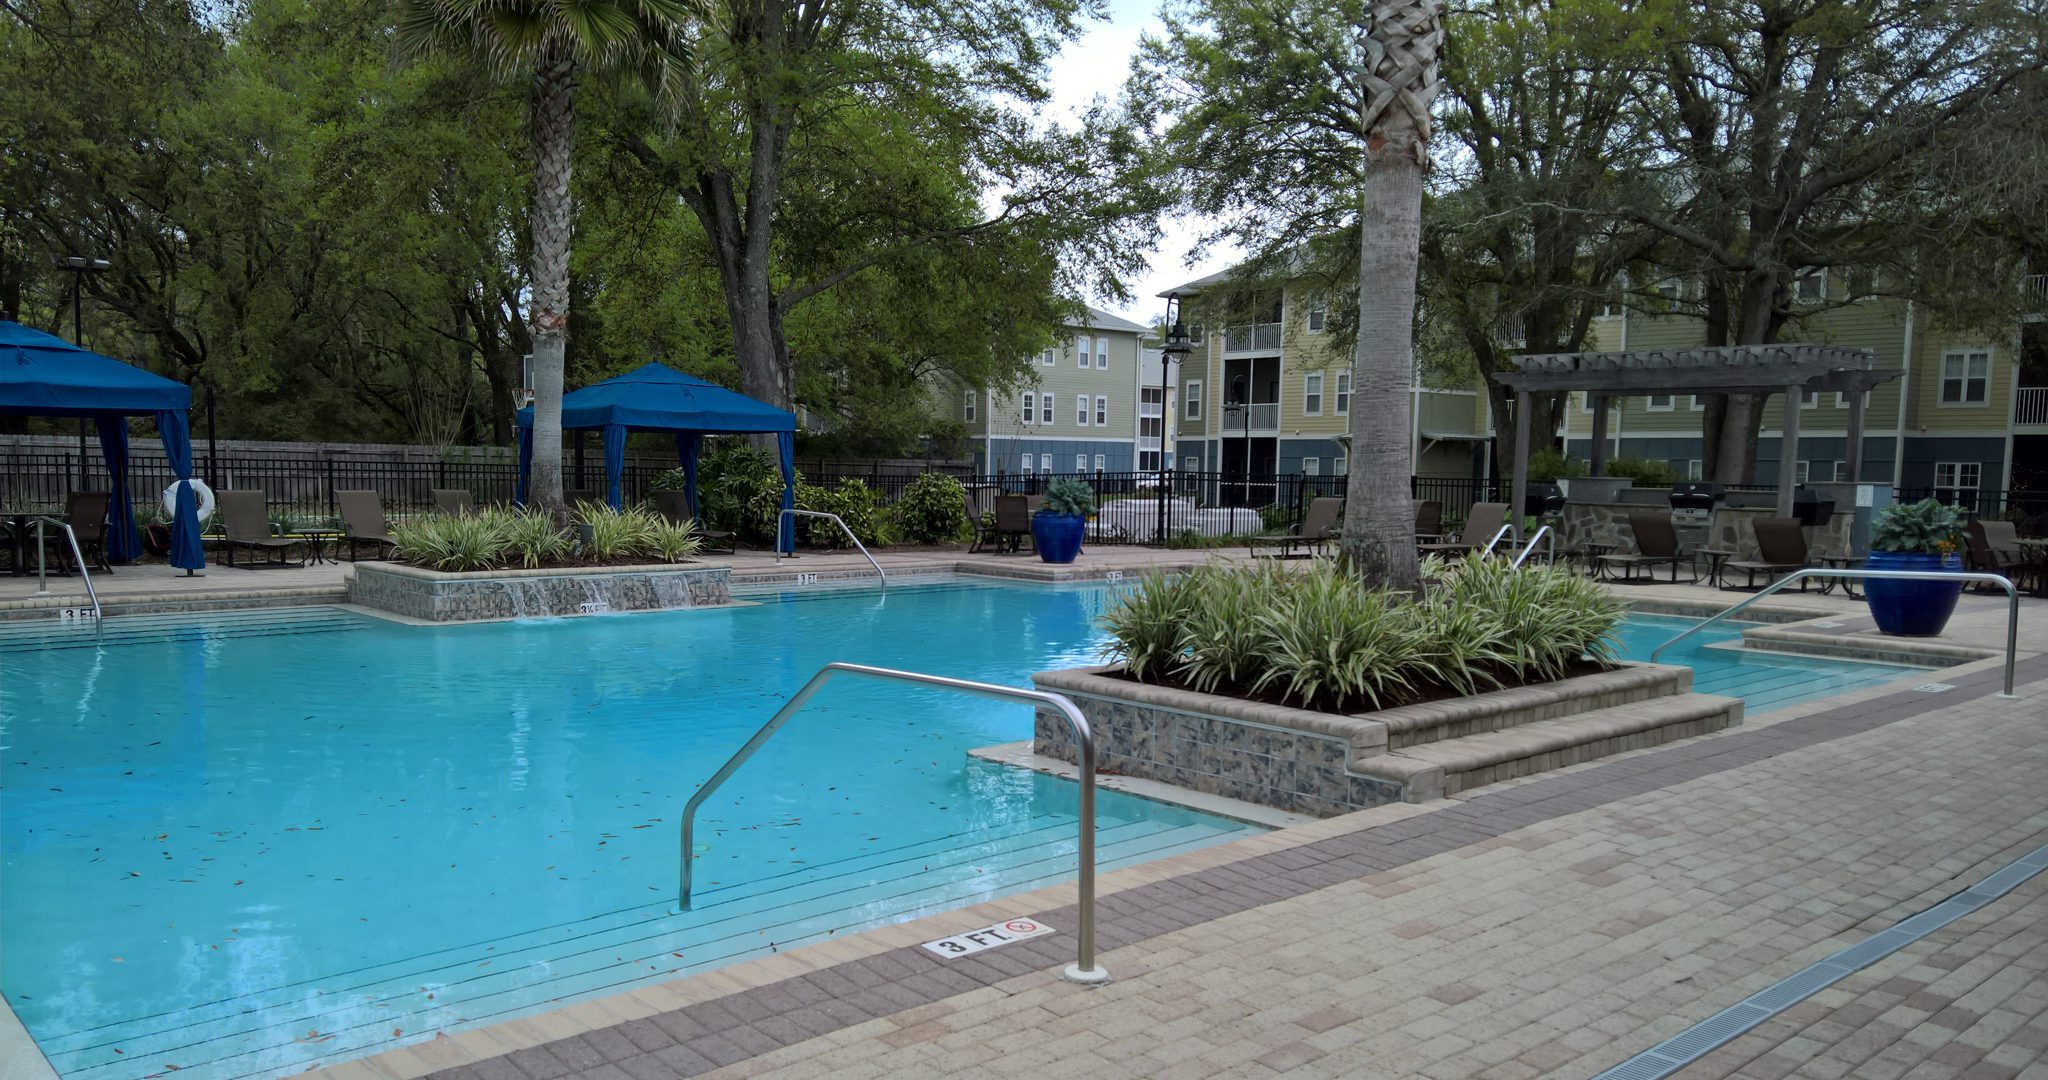 This is a photo of the pool area in one of our short term housing opportunities in Pensacola.